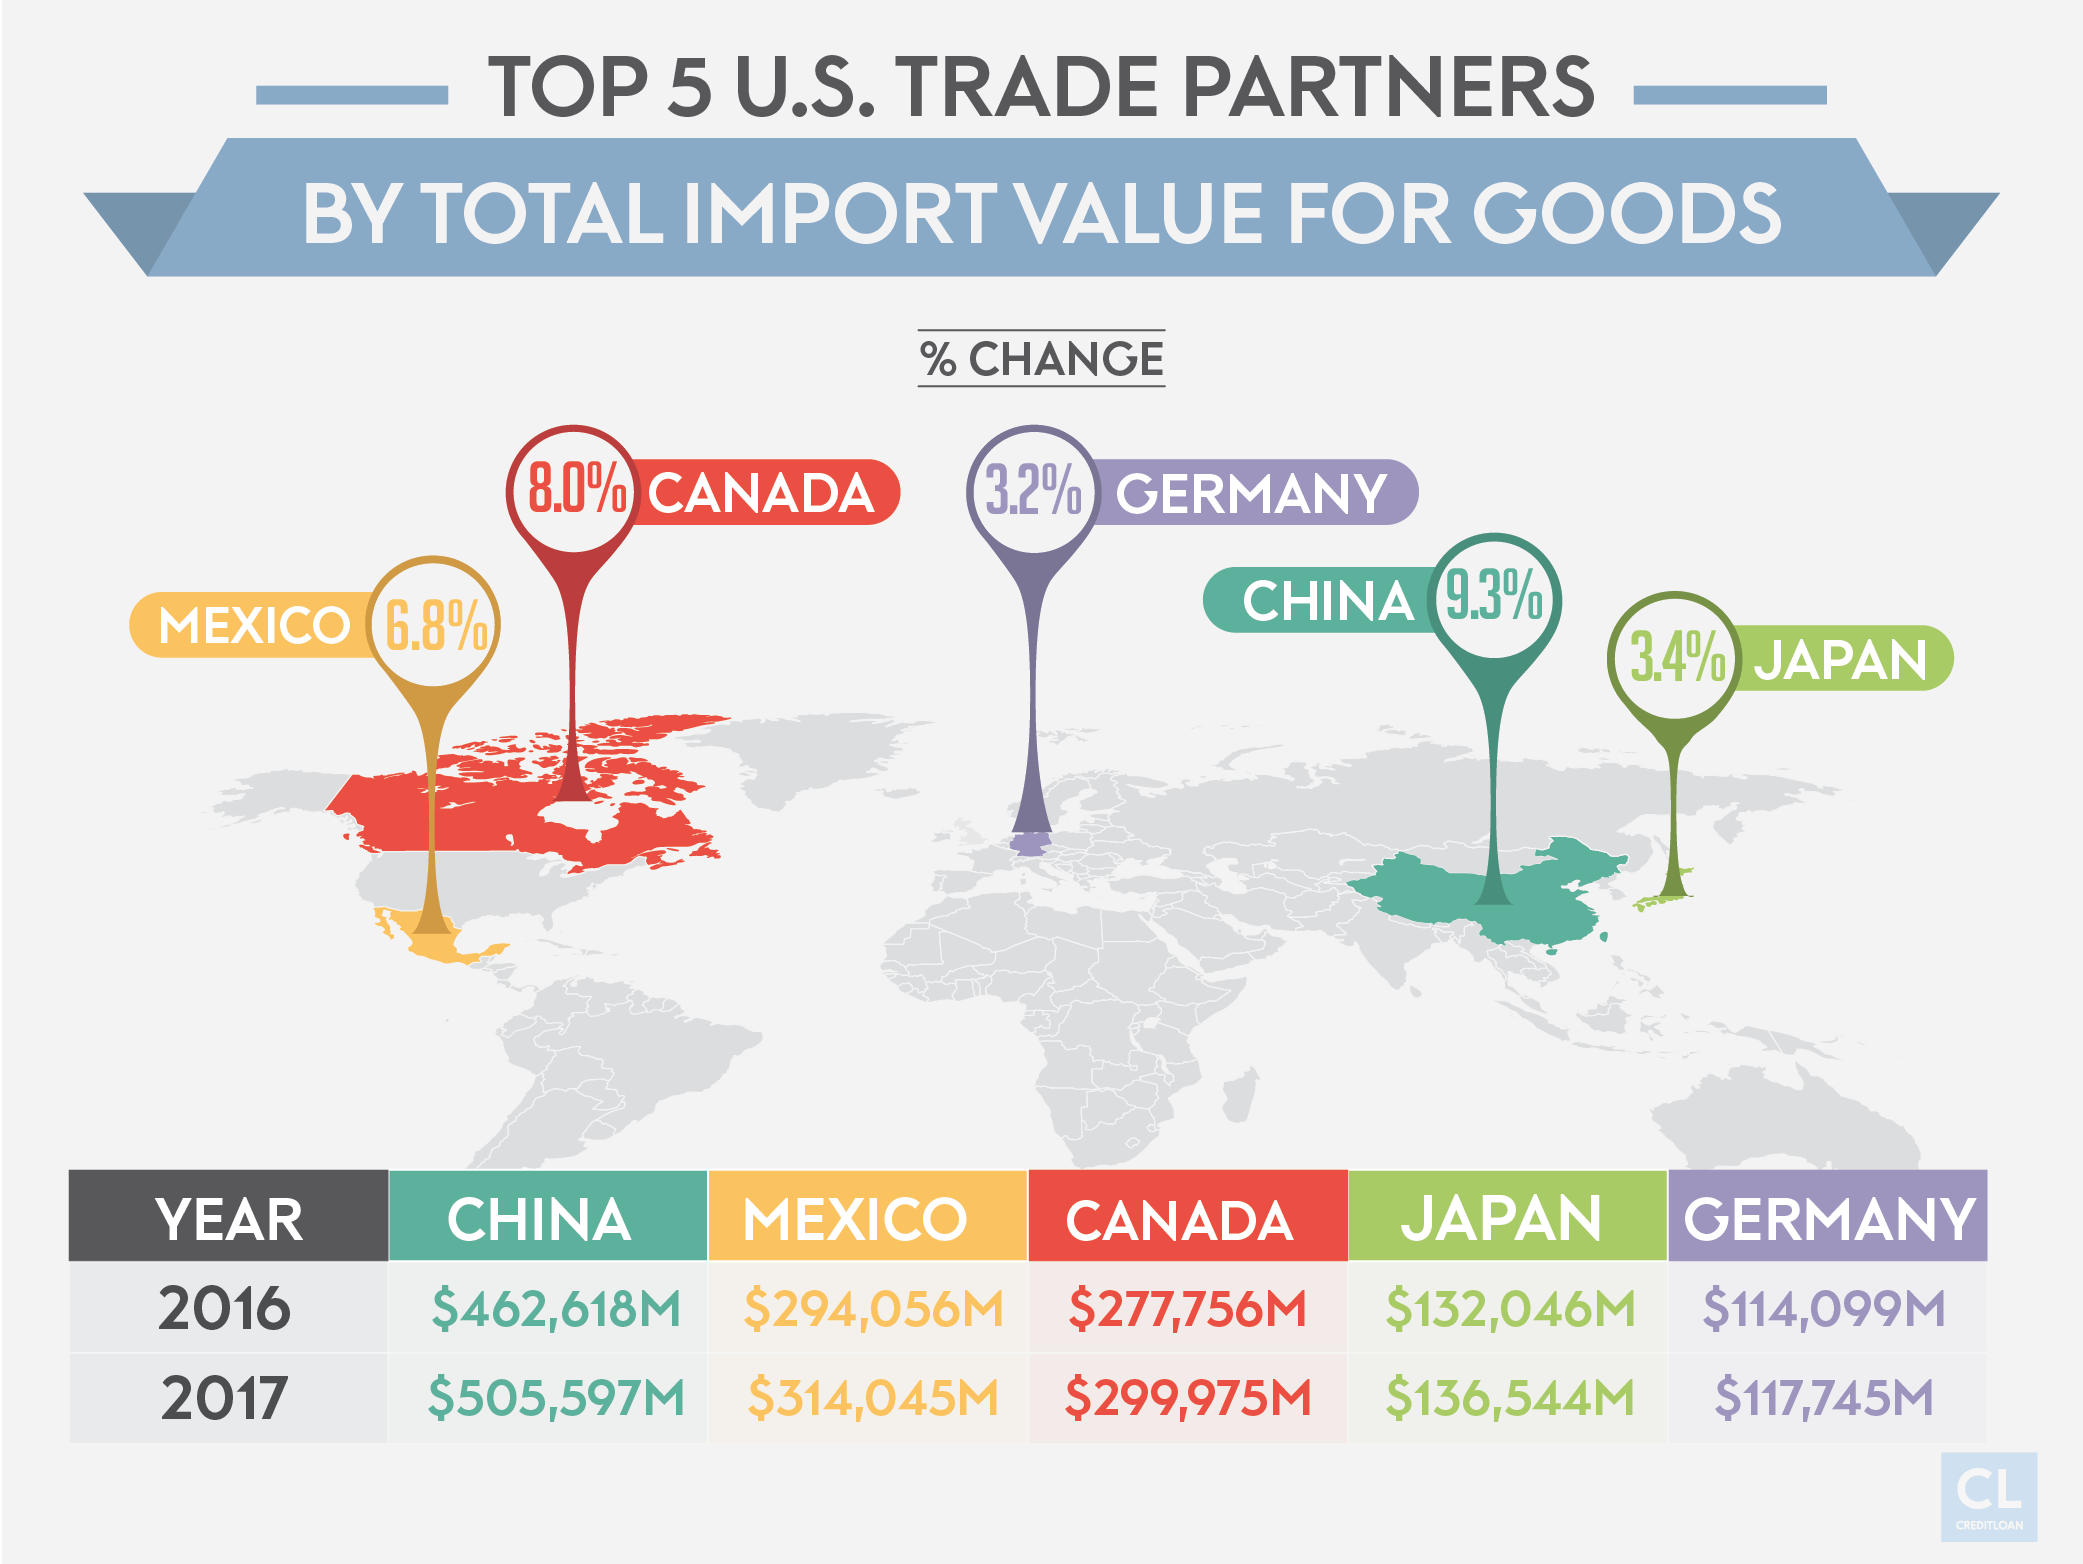 Top 5 U.S. Trade Partners By Total Import Value for Goods